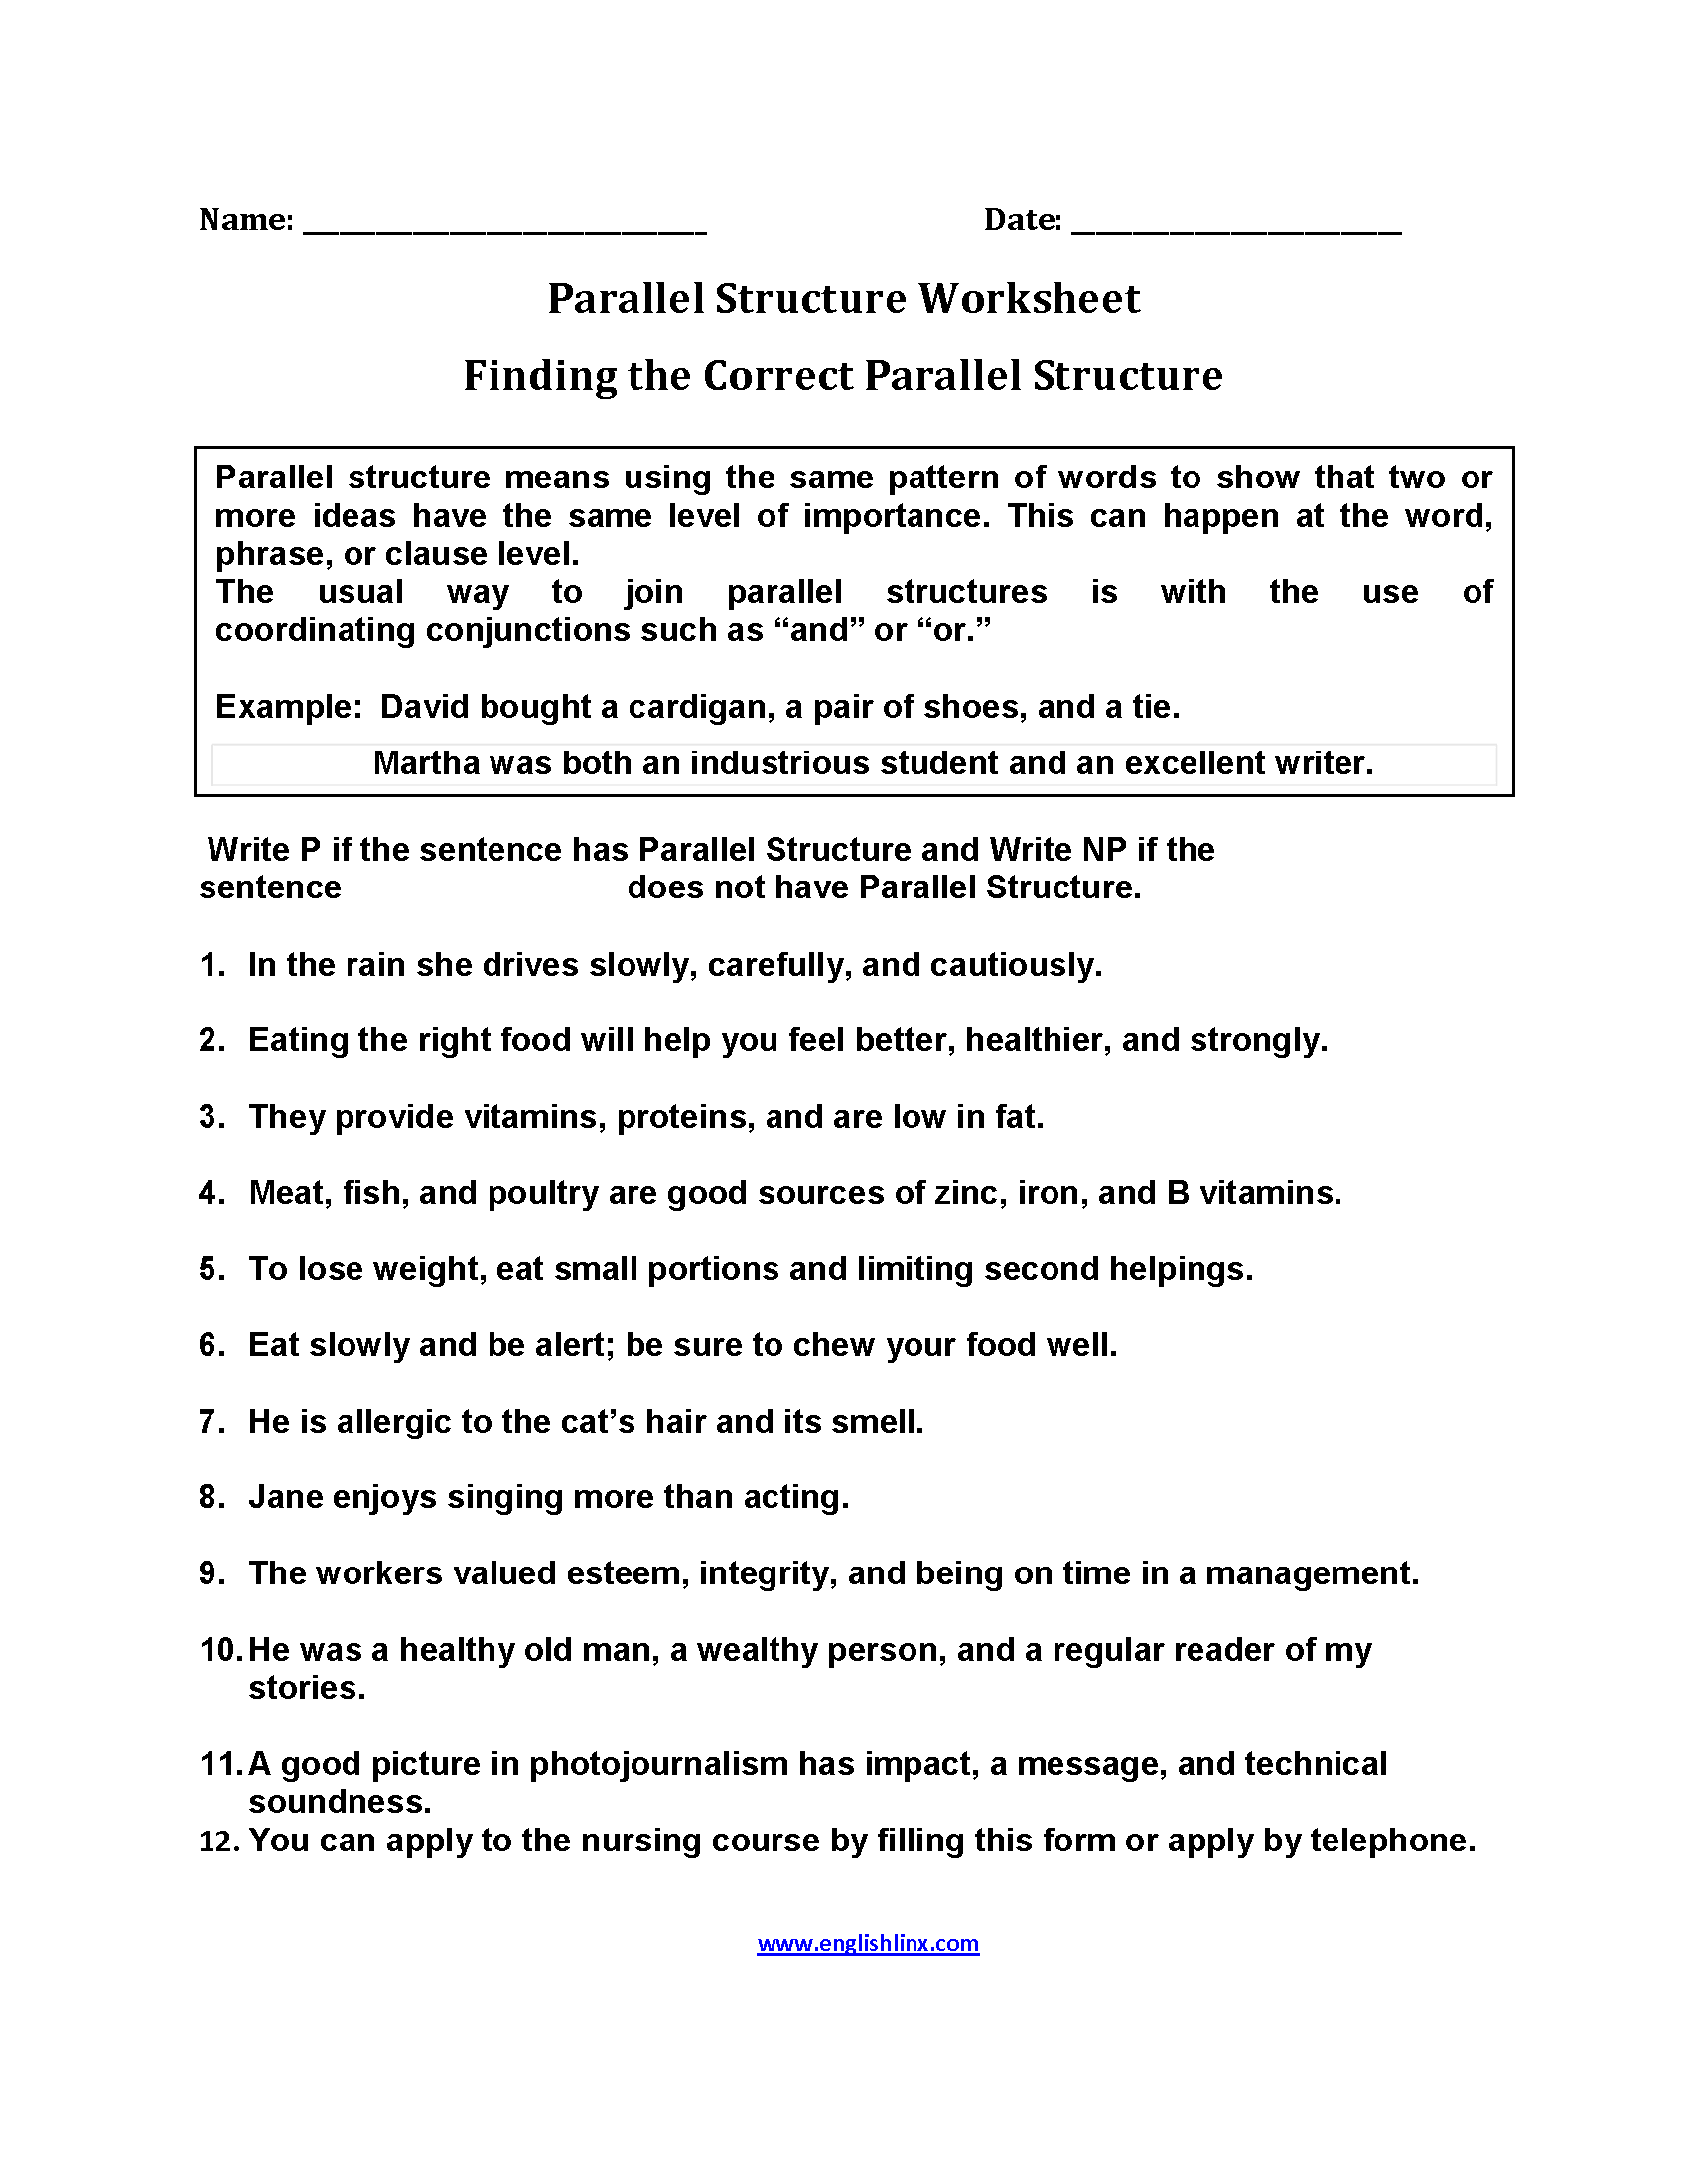 Worksheets Grammar Correction Worksheets englishlinx com parallel structure worksheets worksheets